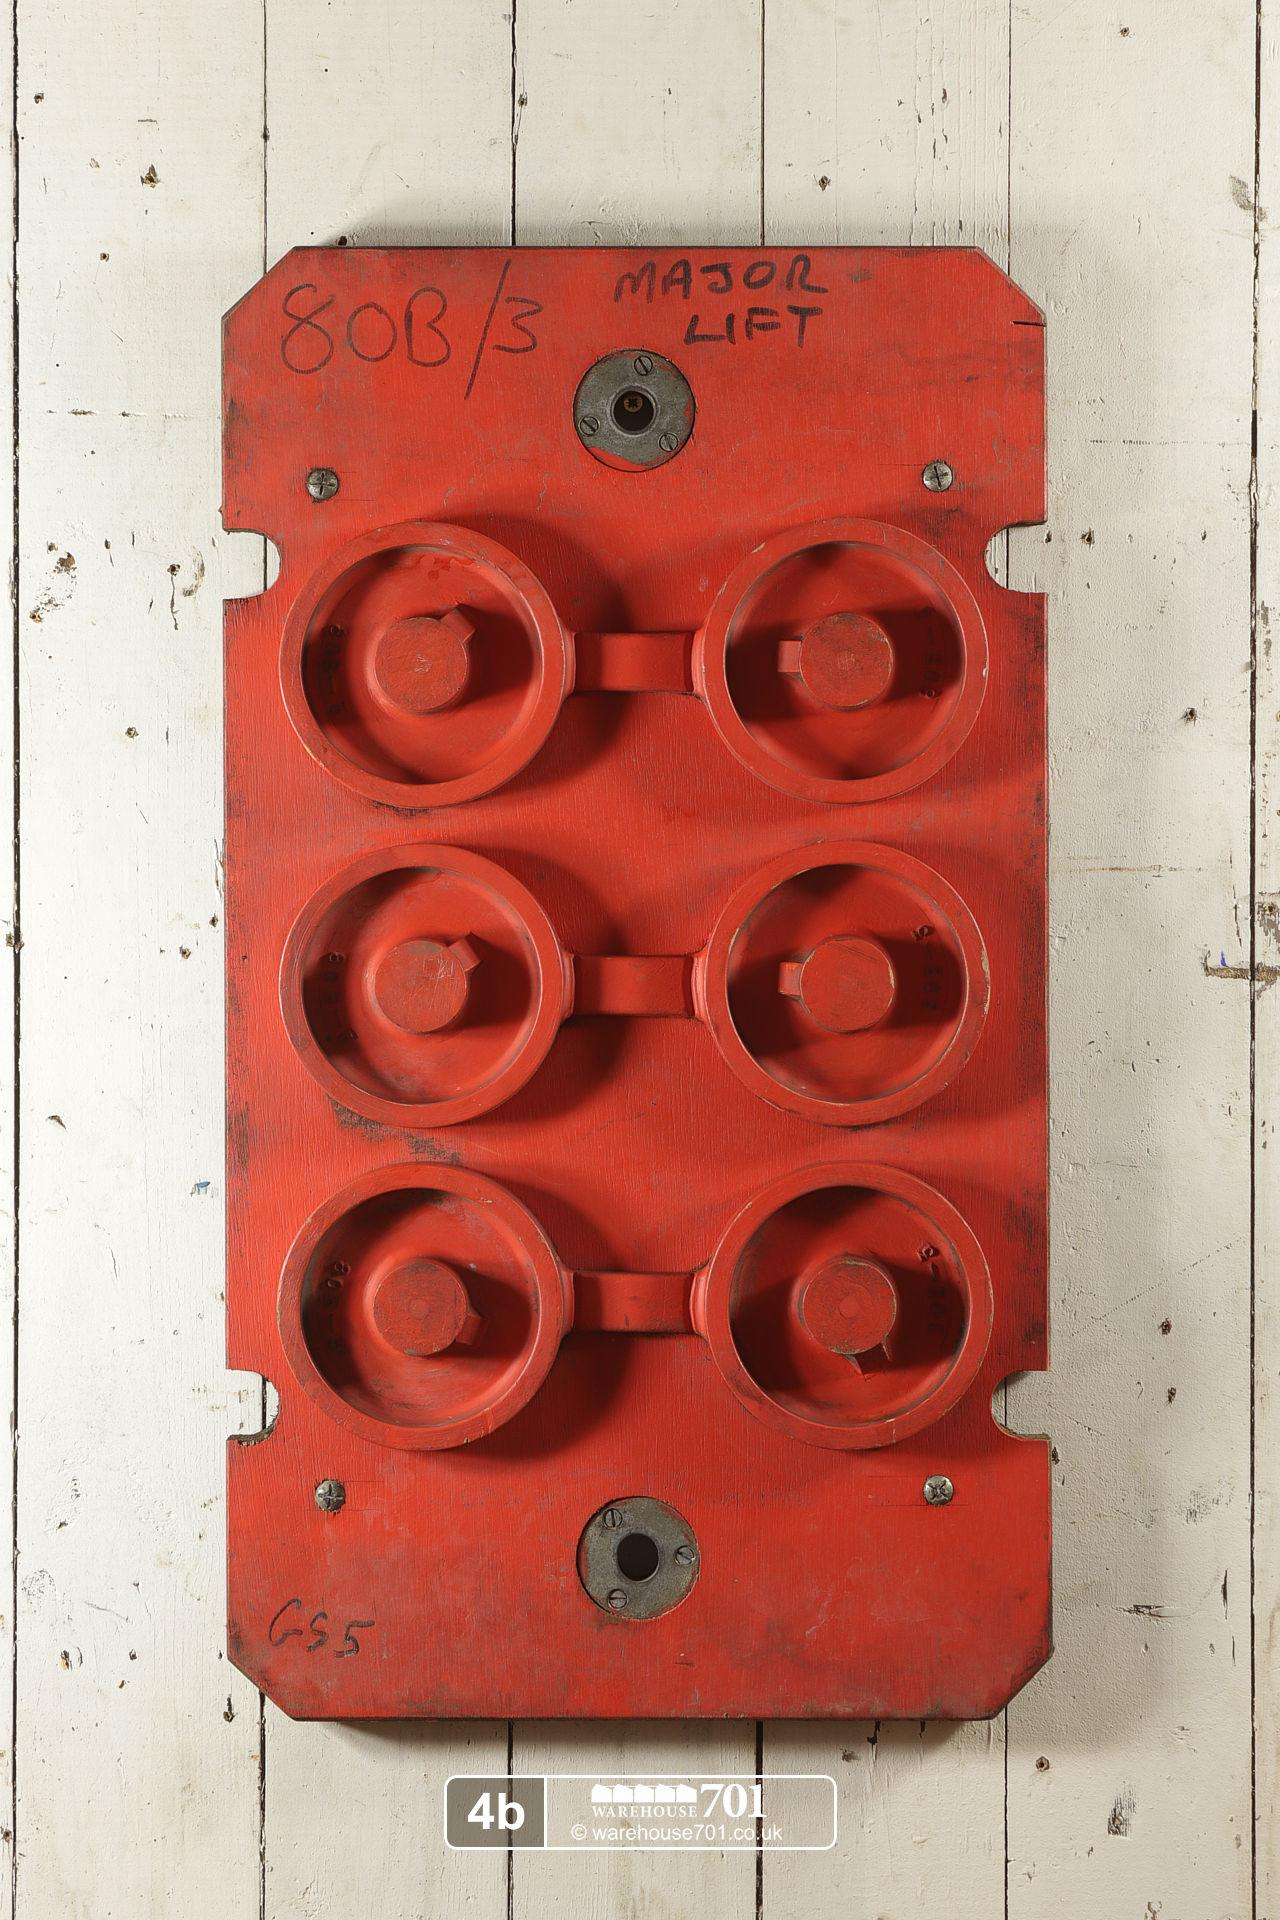 Reclaimed Foundry Patterns or Moulds (No's 4 to 6) for Shop, Retail and Home Display #3